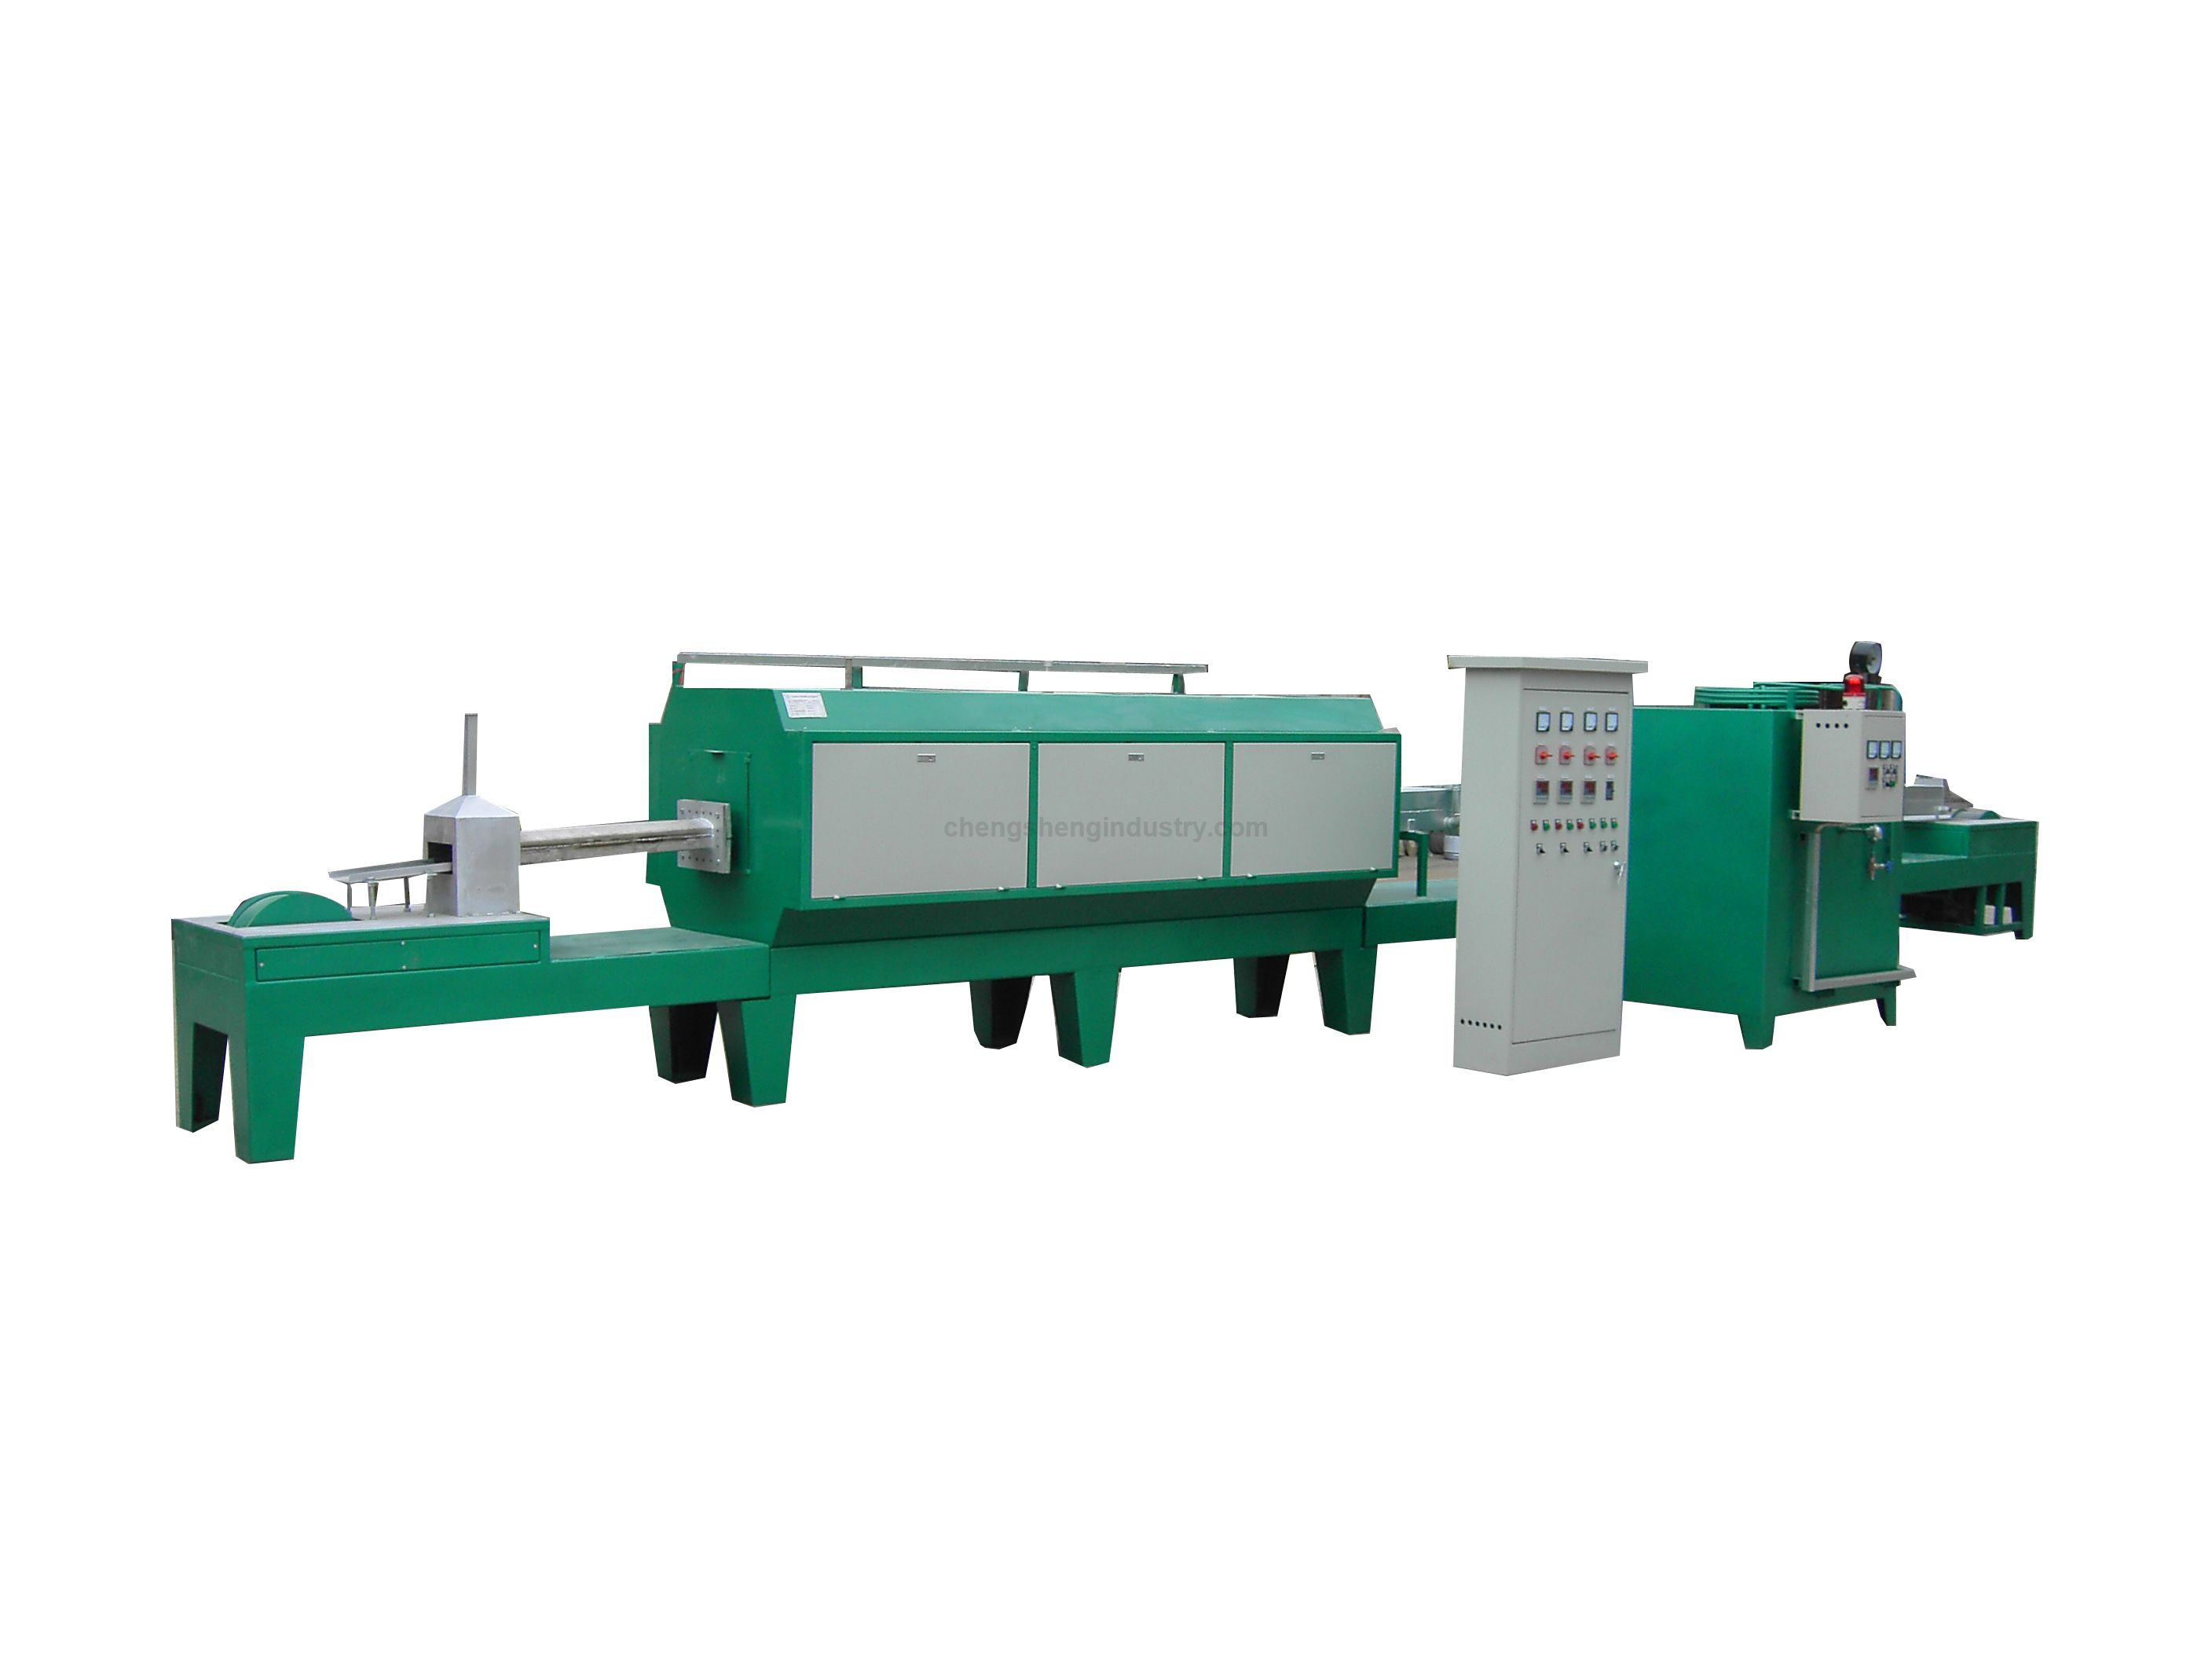 Industrial Continuous Gas Fired Bright Heat Treating Annealing Furnace